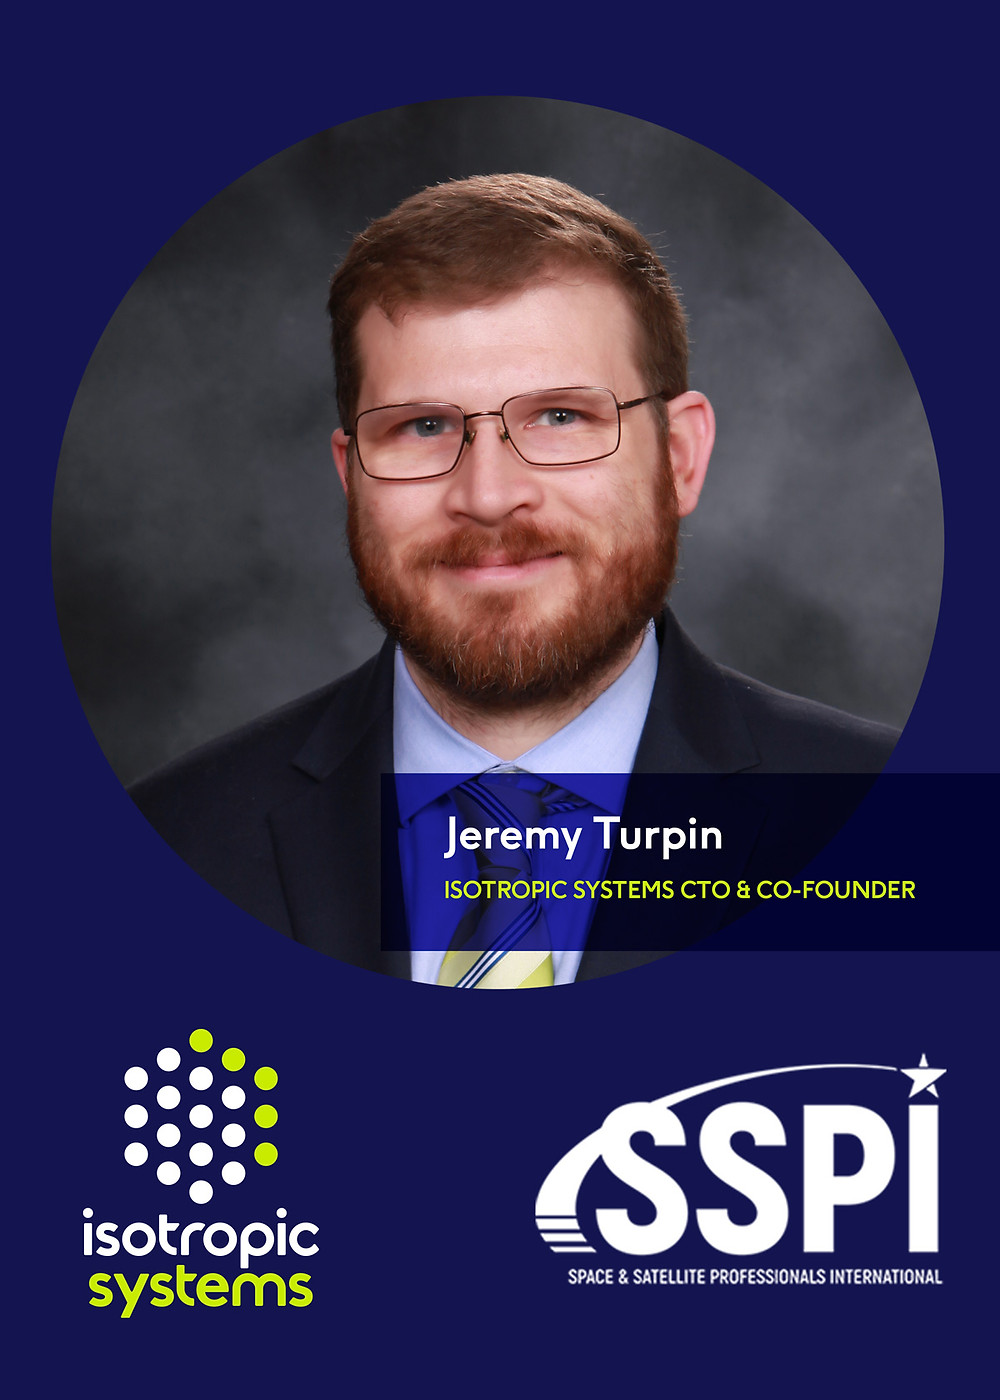 Isotropic Systems CTO and co-founder Jeremy Turpin named to SSPI Board of Directors